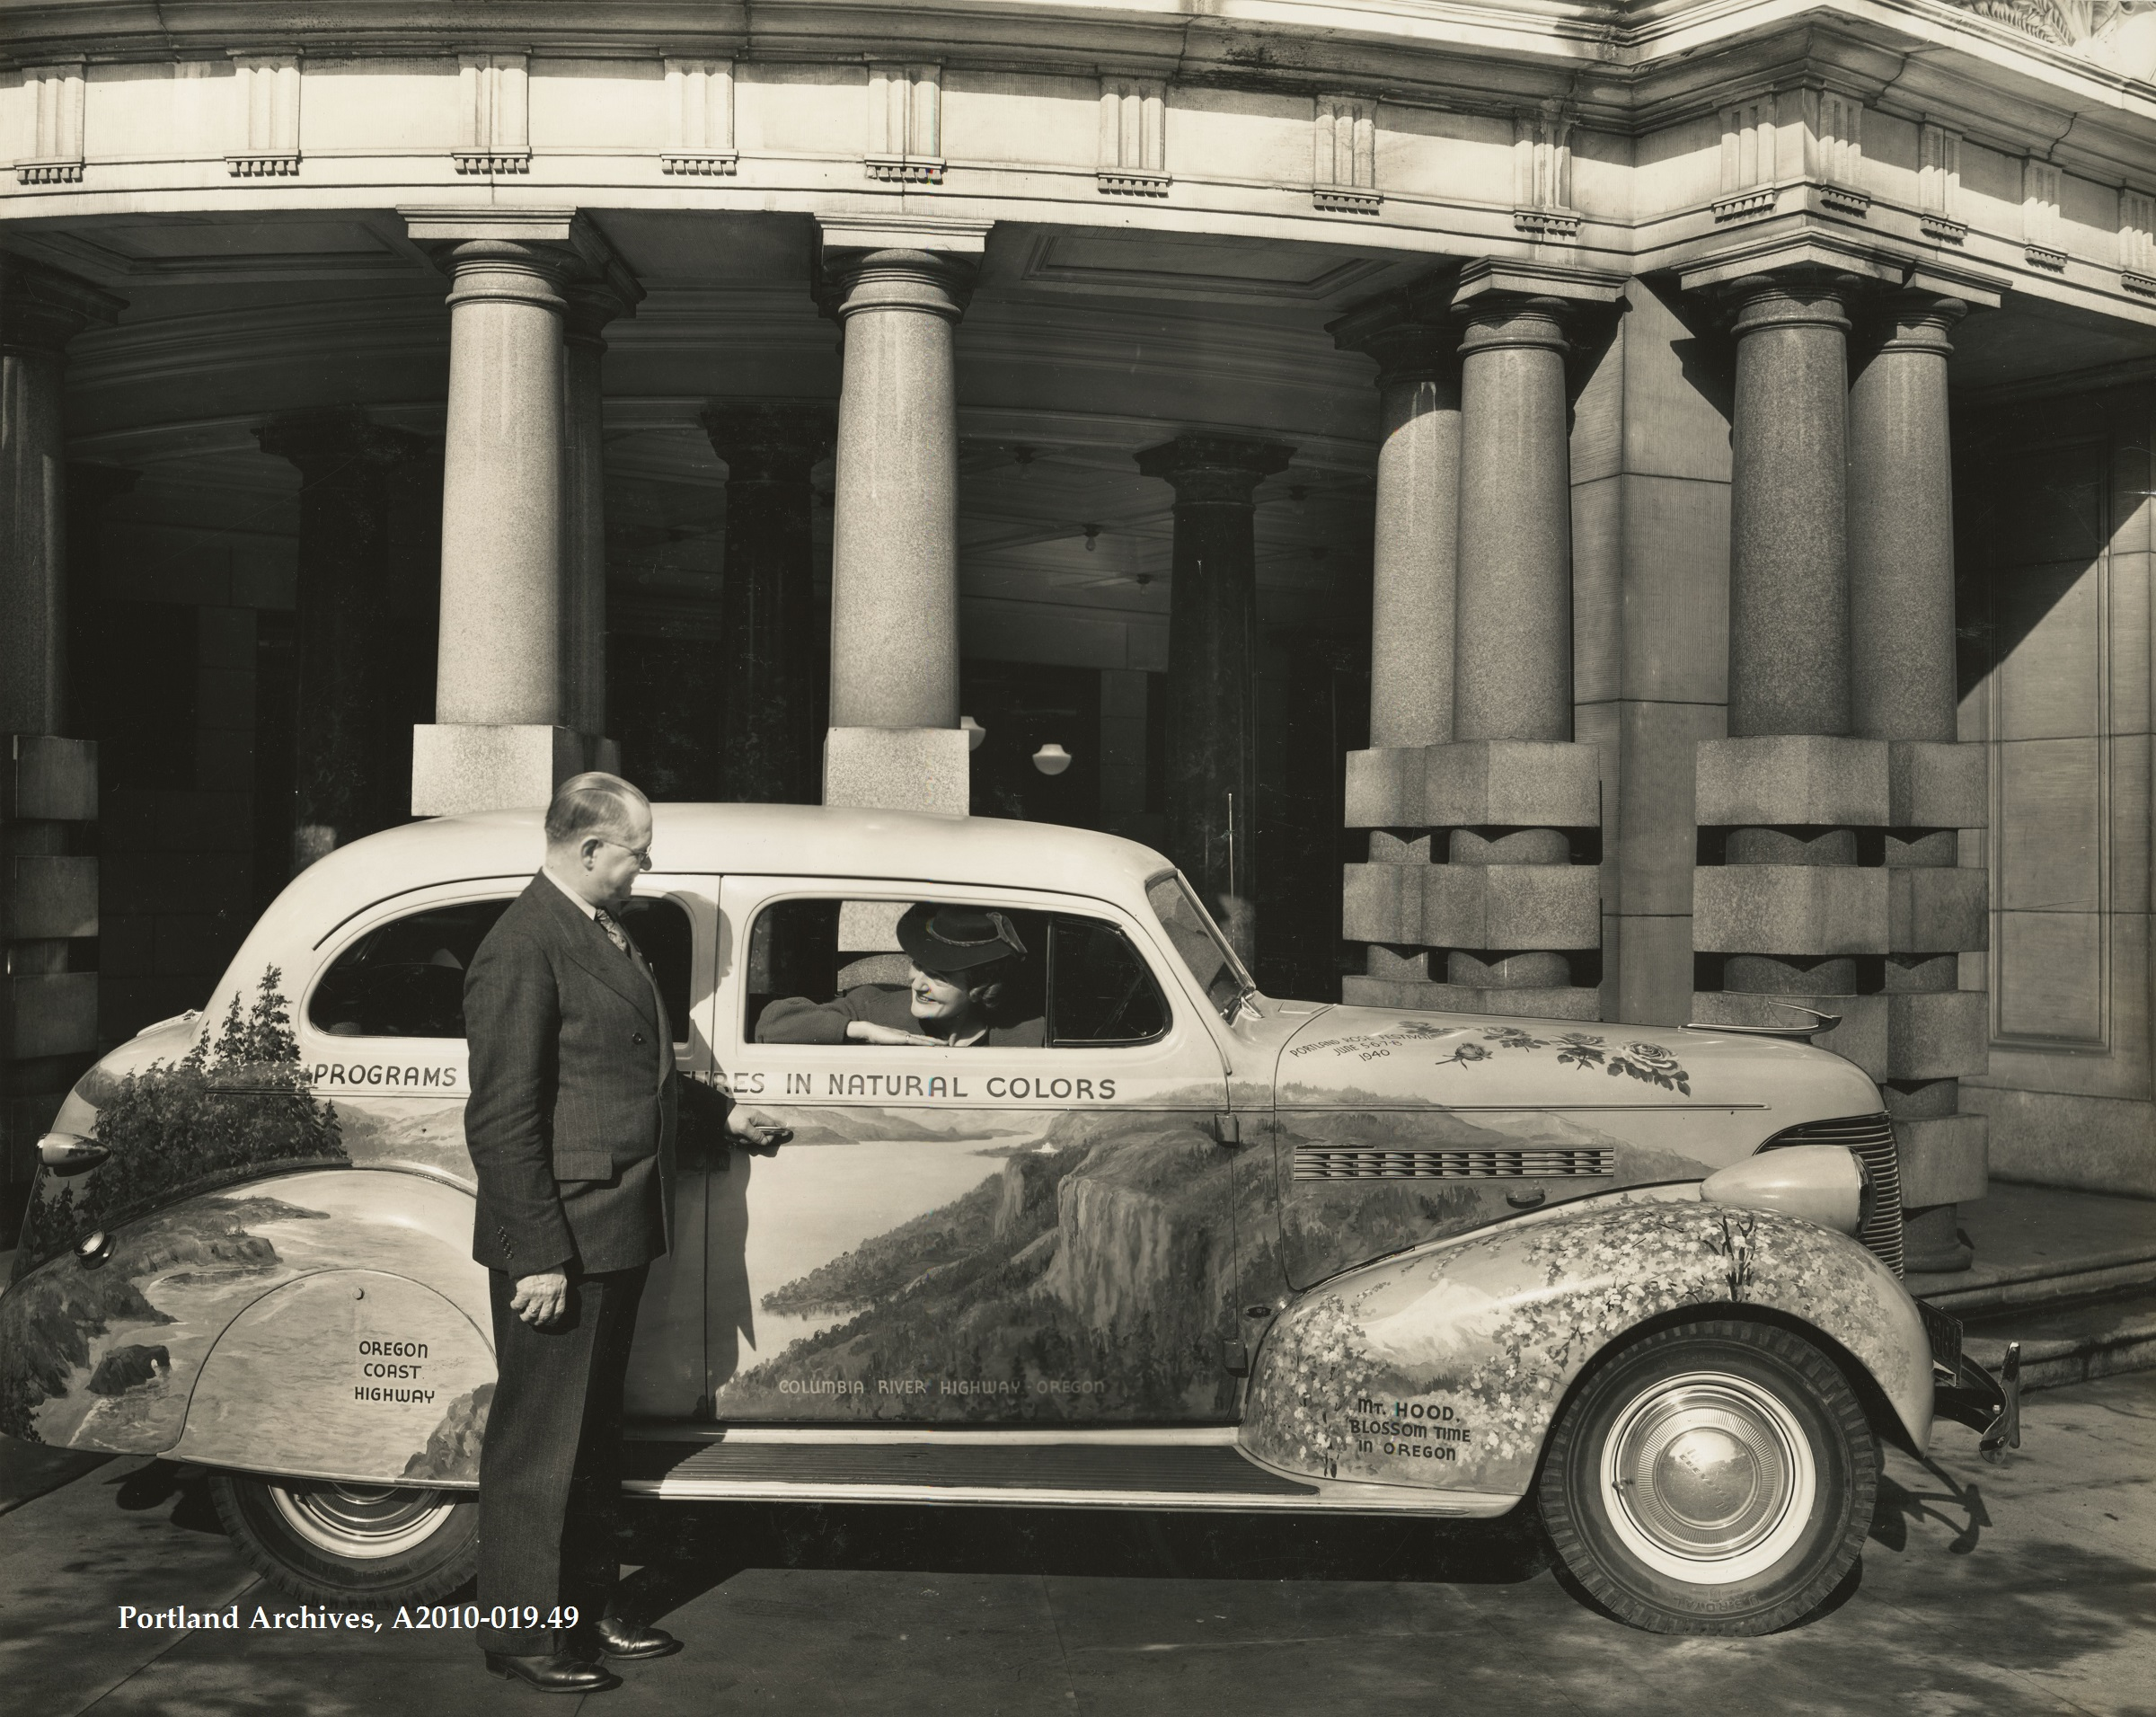 1939-oct-28_mayor-inspecting-auto-advertising-oregon-1939_a2010-019-49